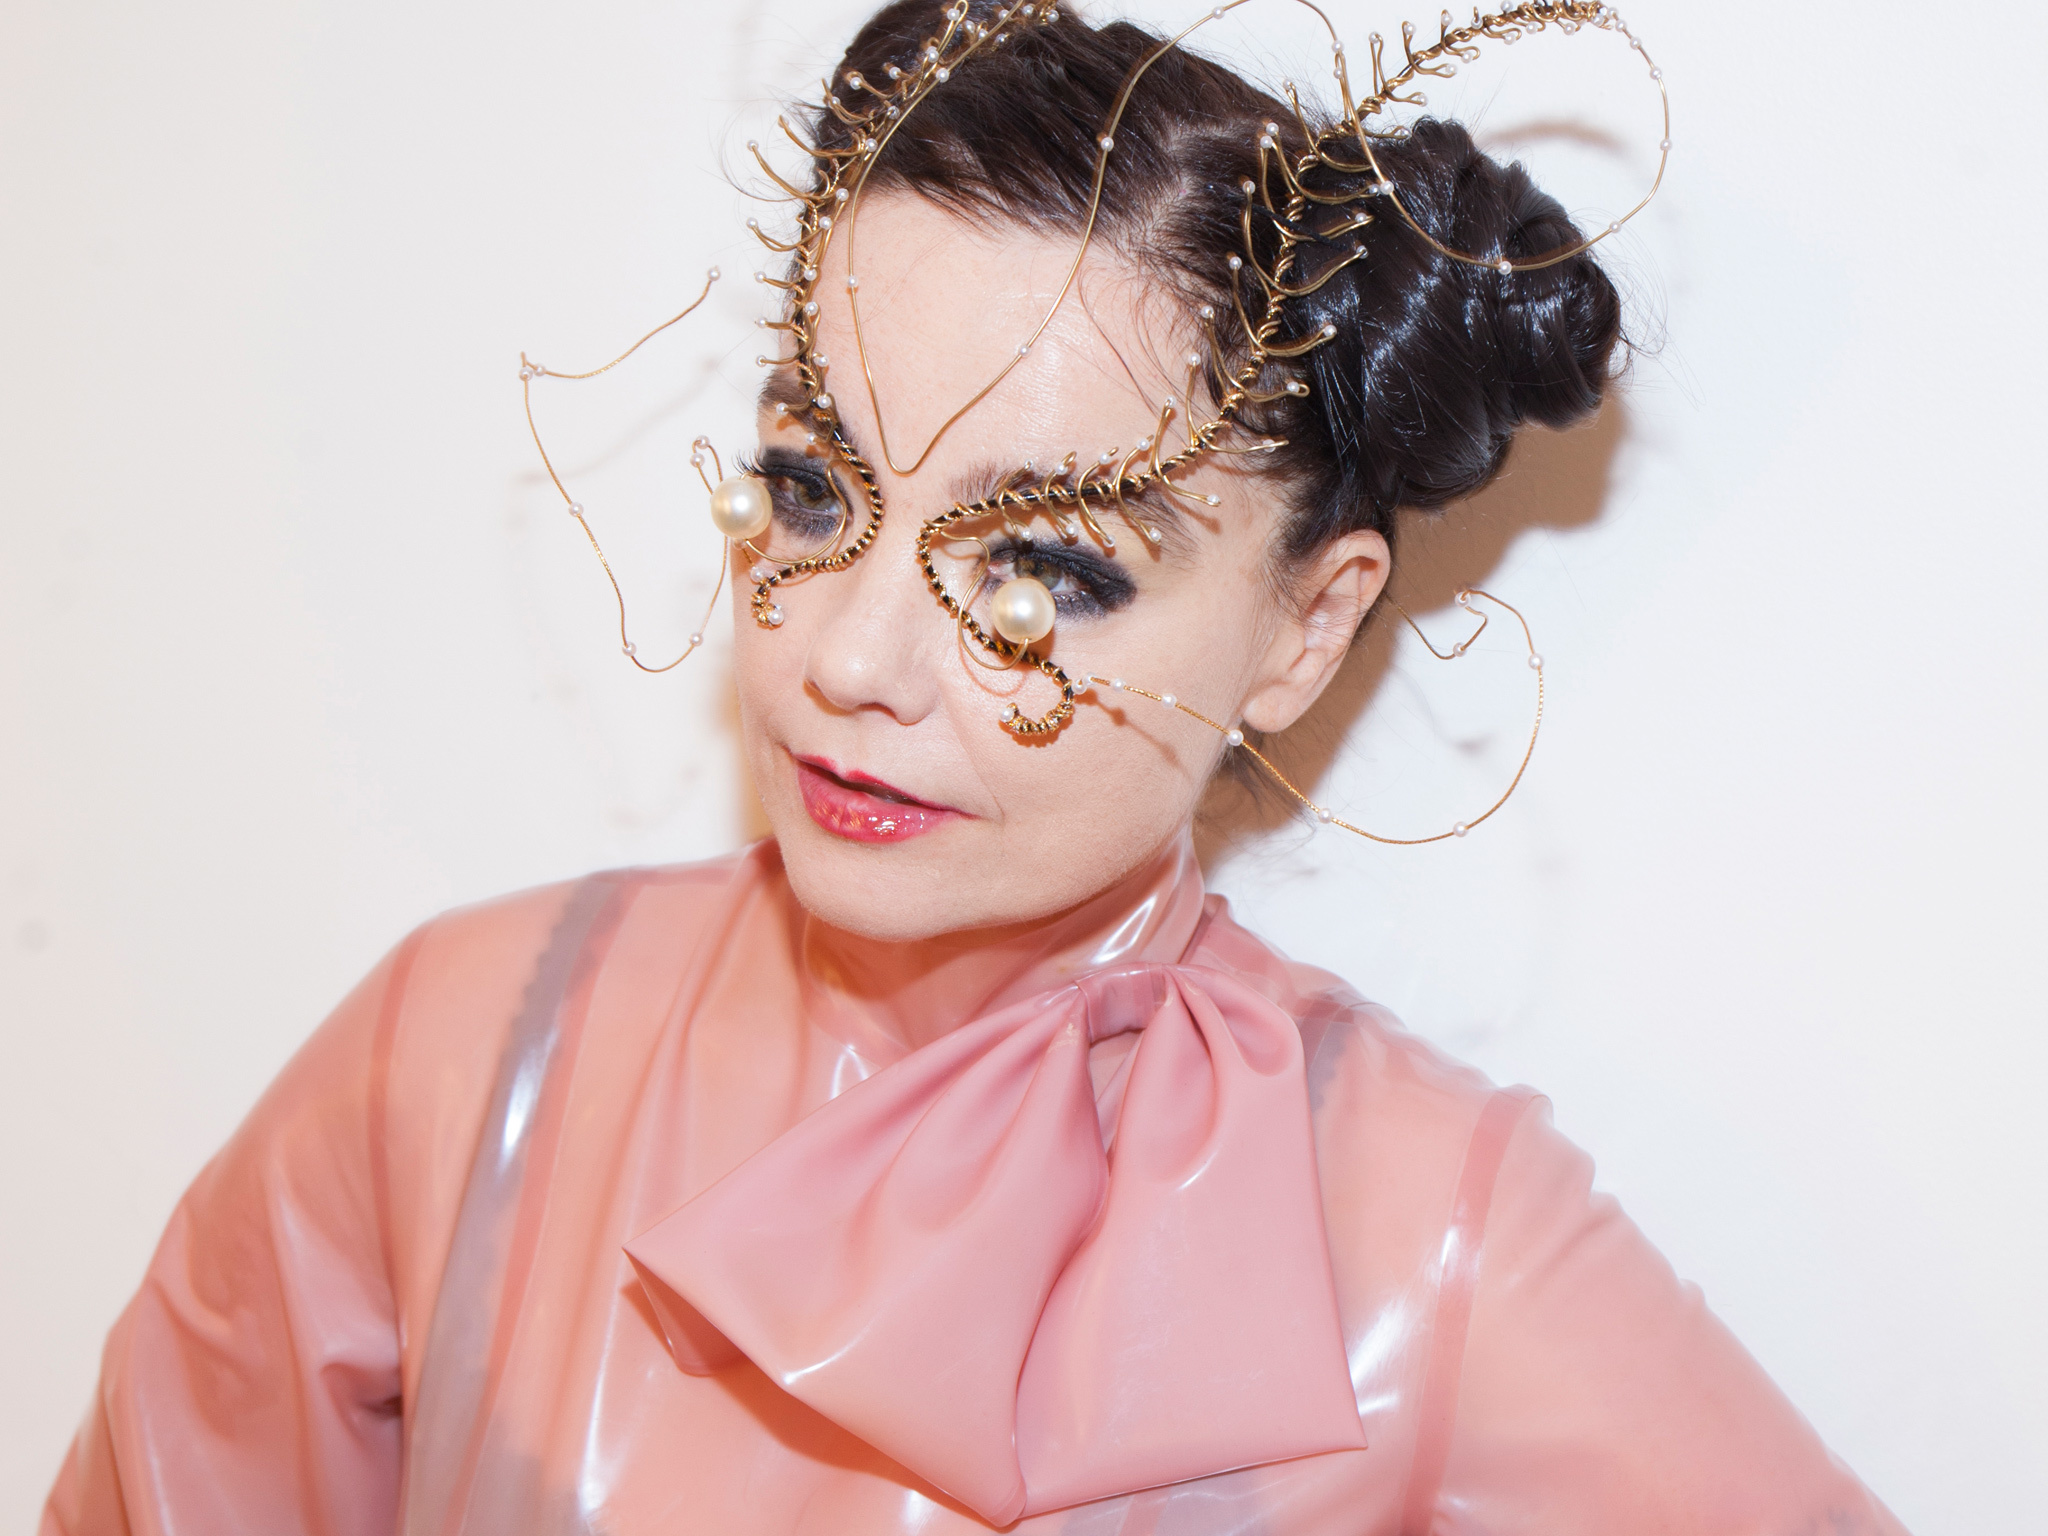 Iceland, we forgive you: Björk is coming to London for a gig and exhibition